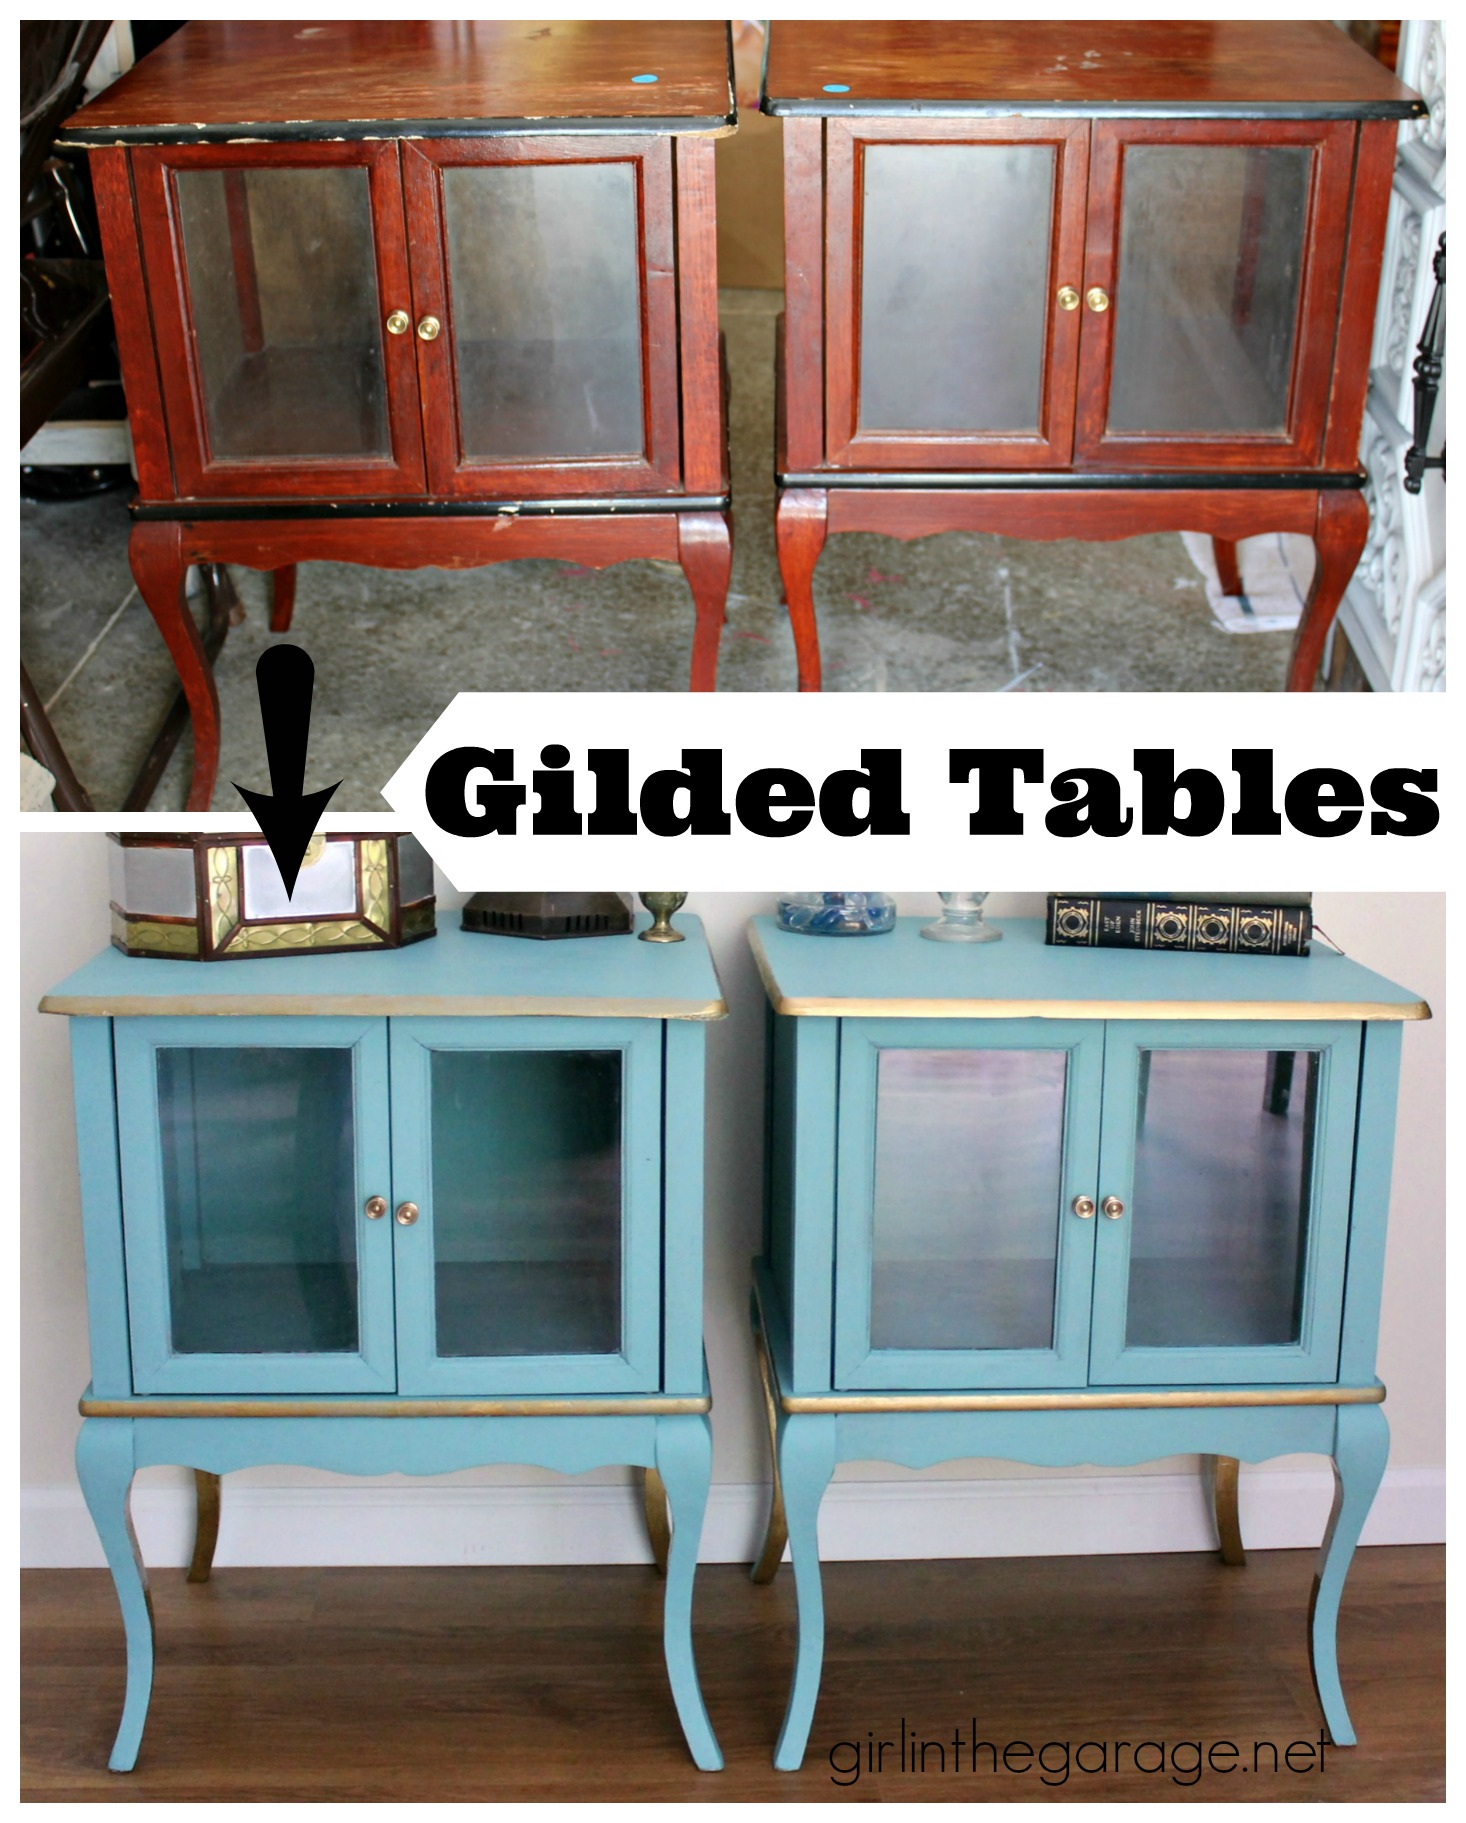 Gilded Tables: Turquoise and Gold Makeover by Girl in the Garage